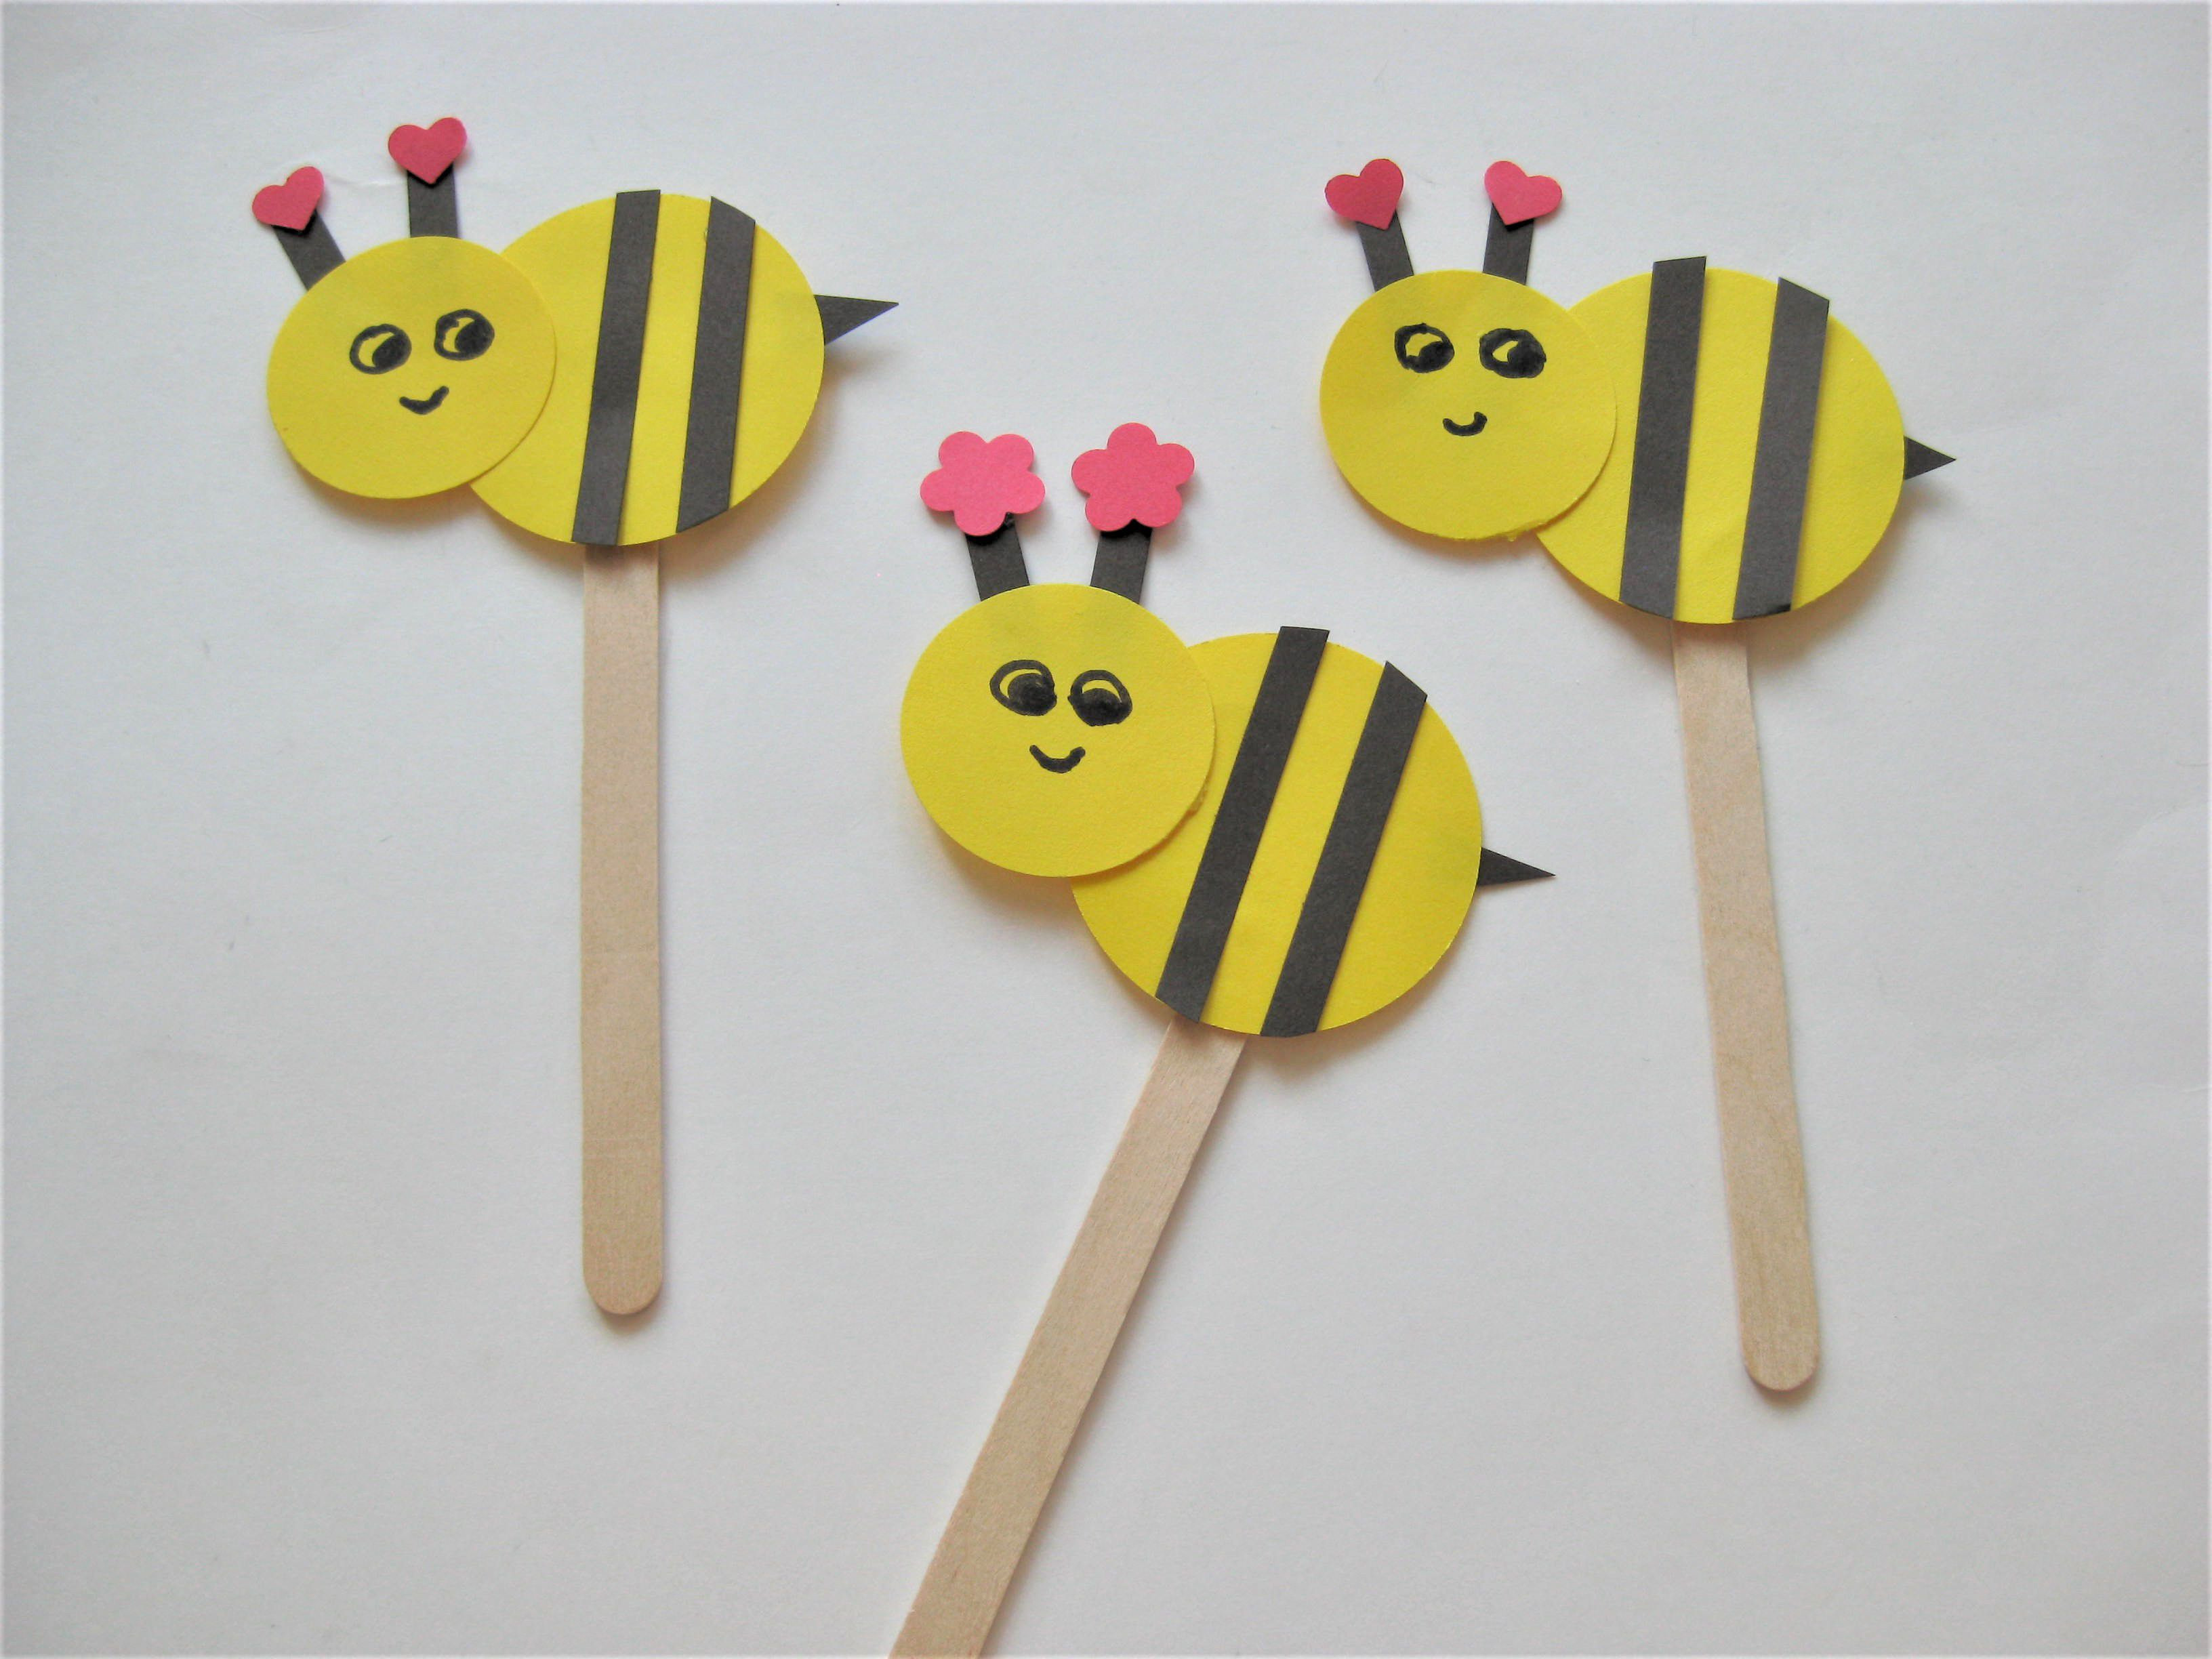 Best ideas about Simple Crafts For Kids . Save or Pin Bee Craft for Kids Now.